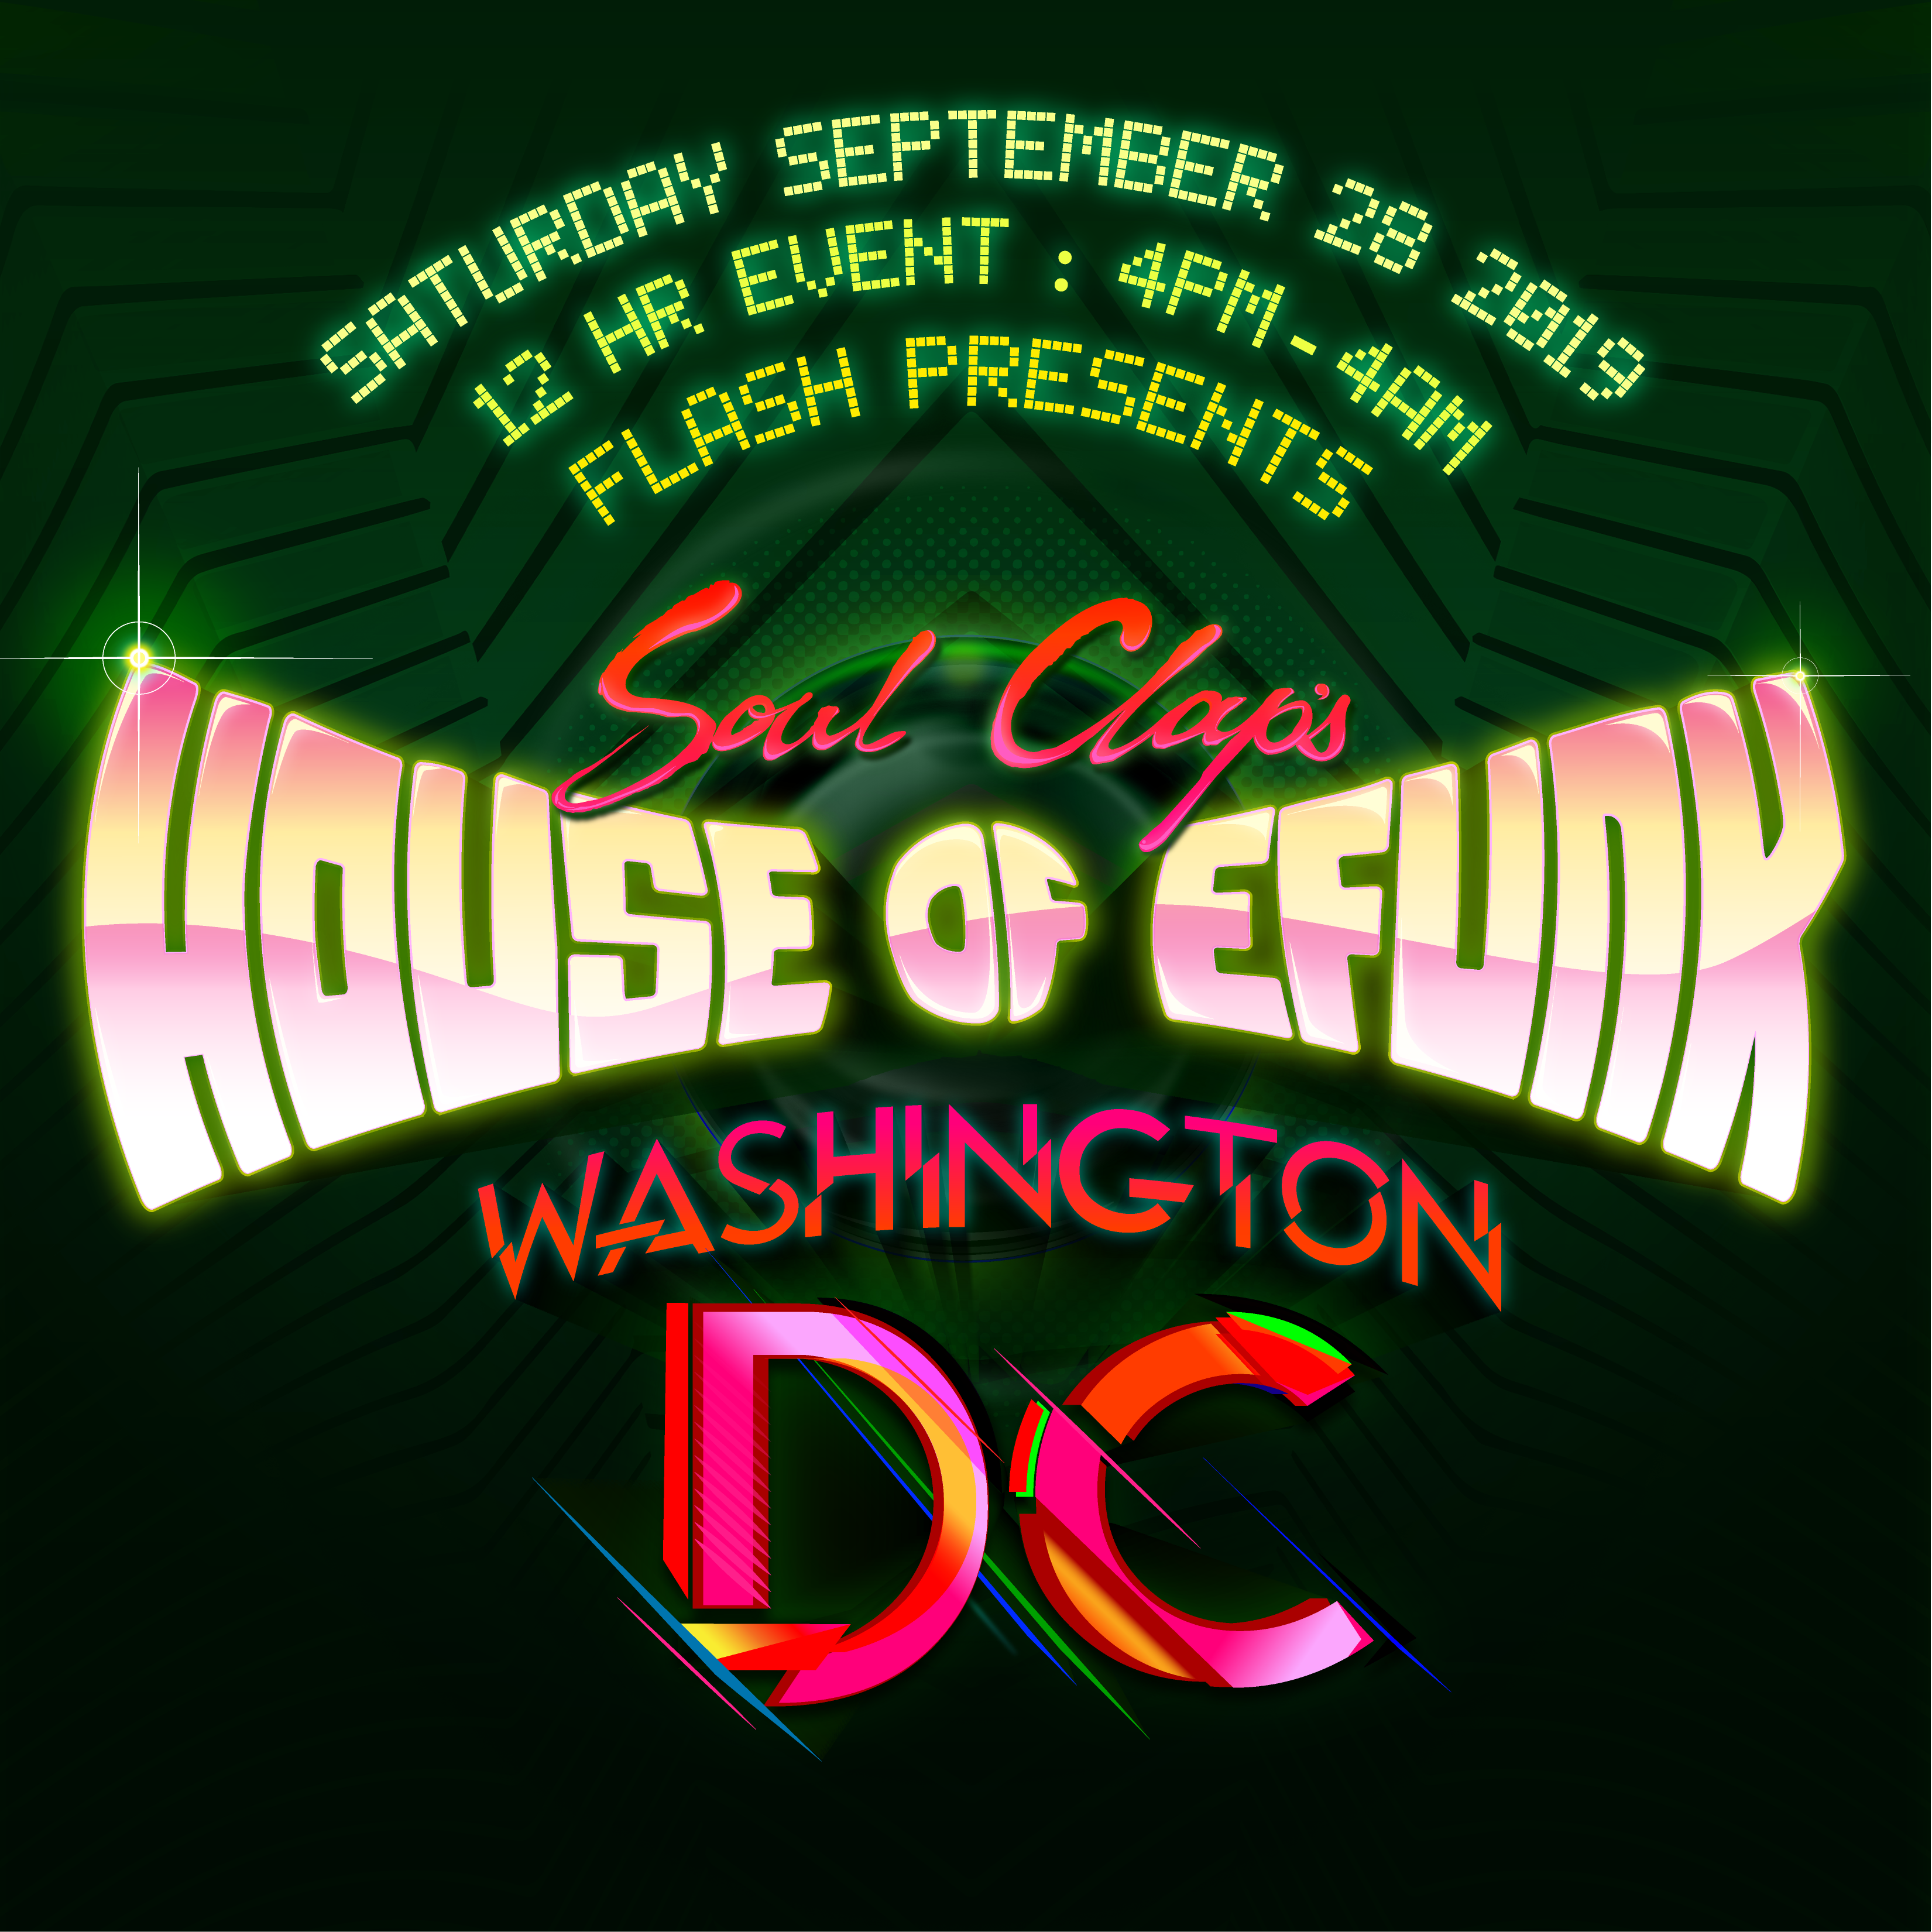 Soul Clap's House of Efunk DC high quality event photo